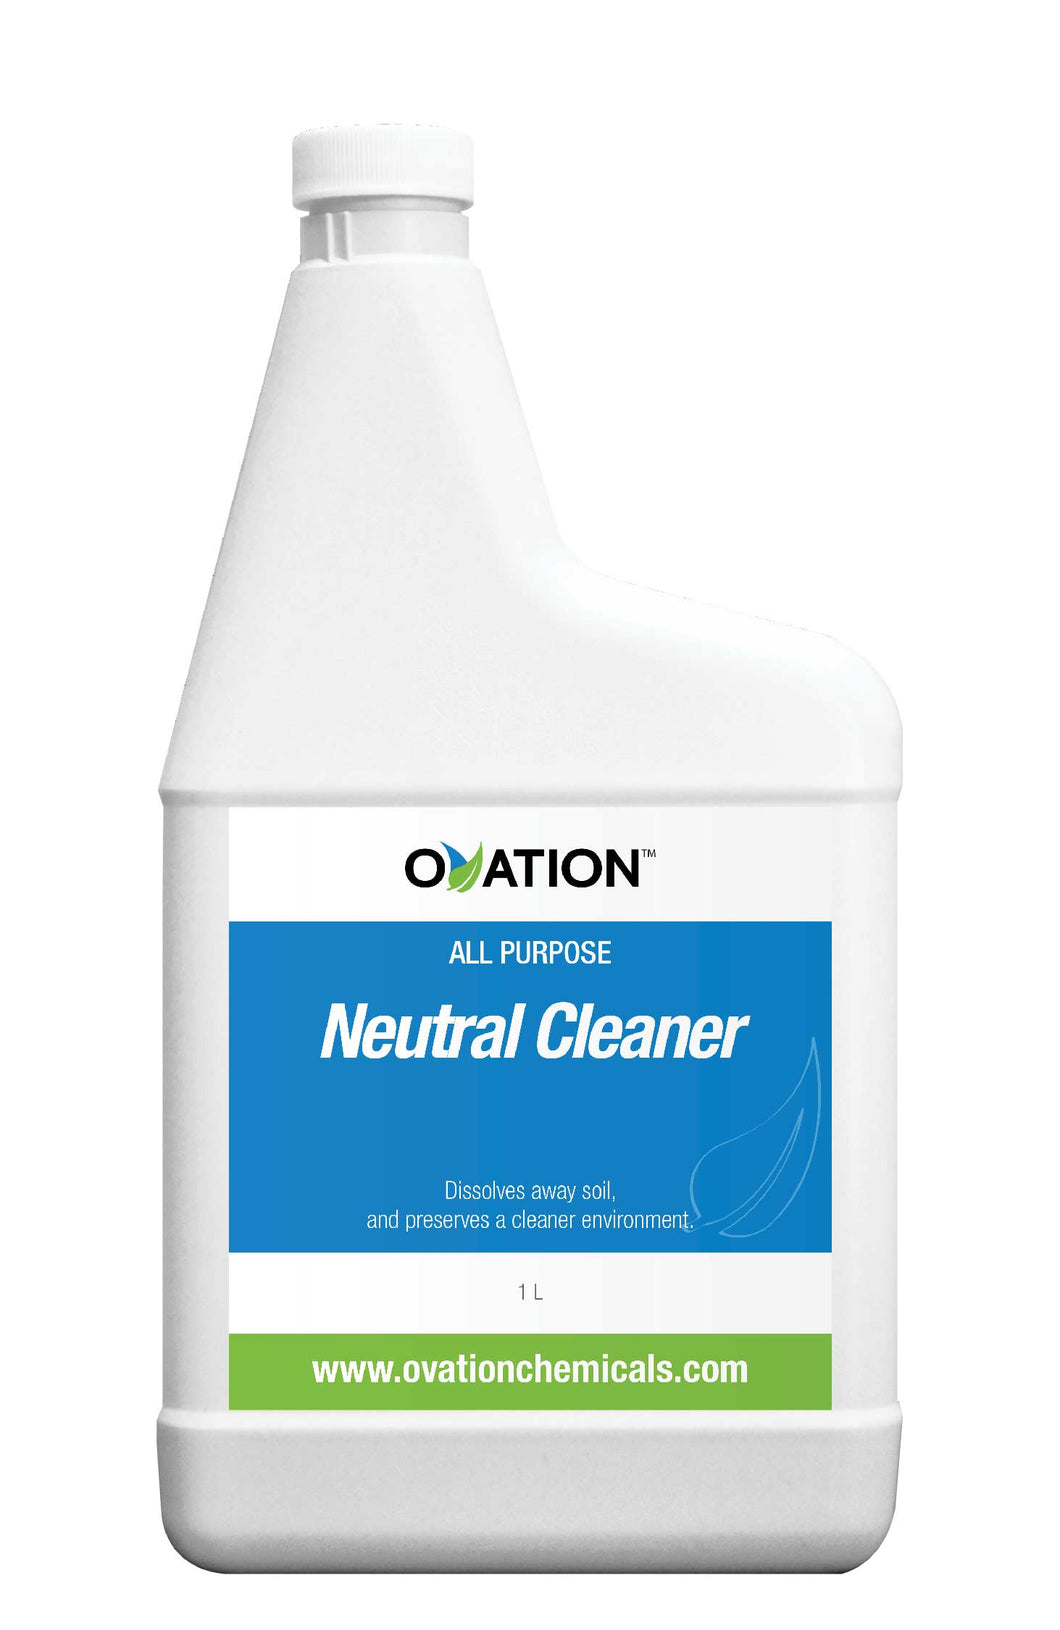 Ovation All Purpose Neutral Cleaner (32oz / 1L) by Katan Technologies